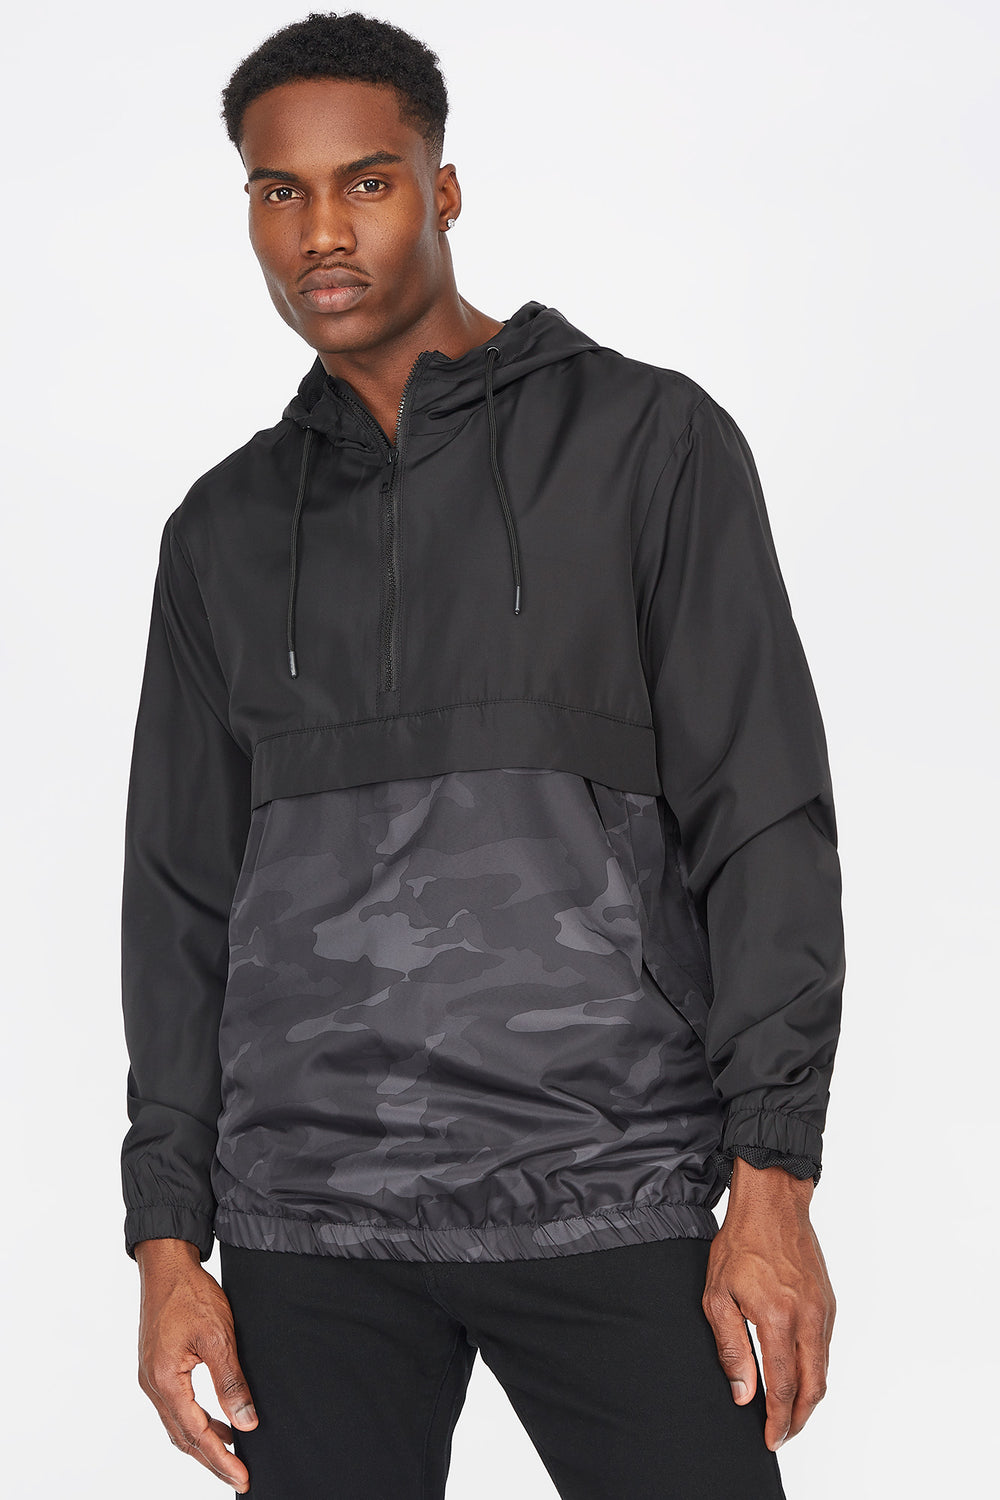 Colour Block Half-Zip Windbreaker Black with White